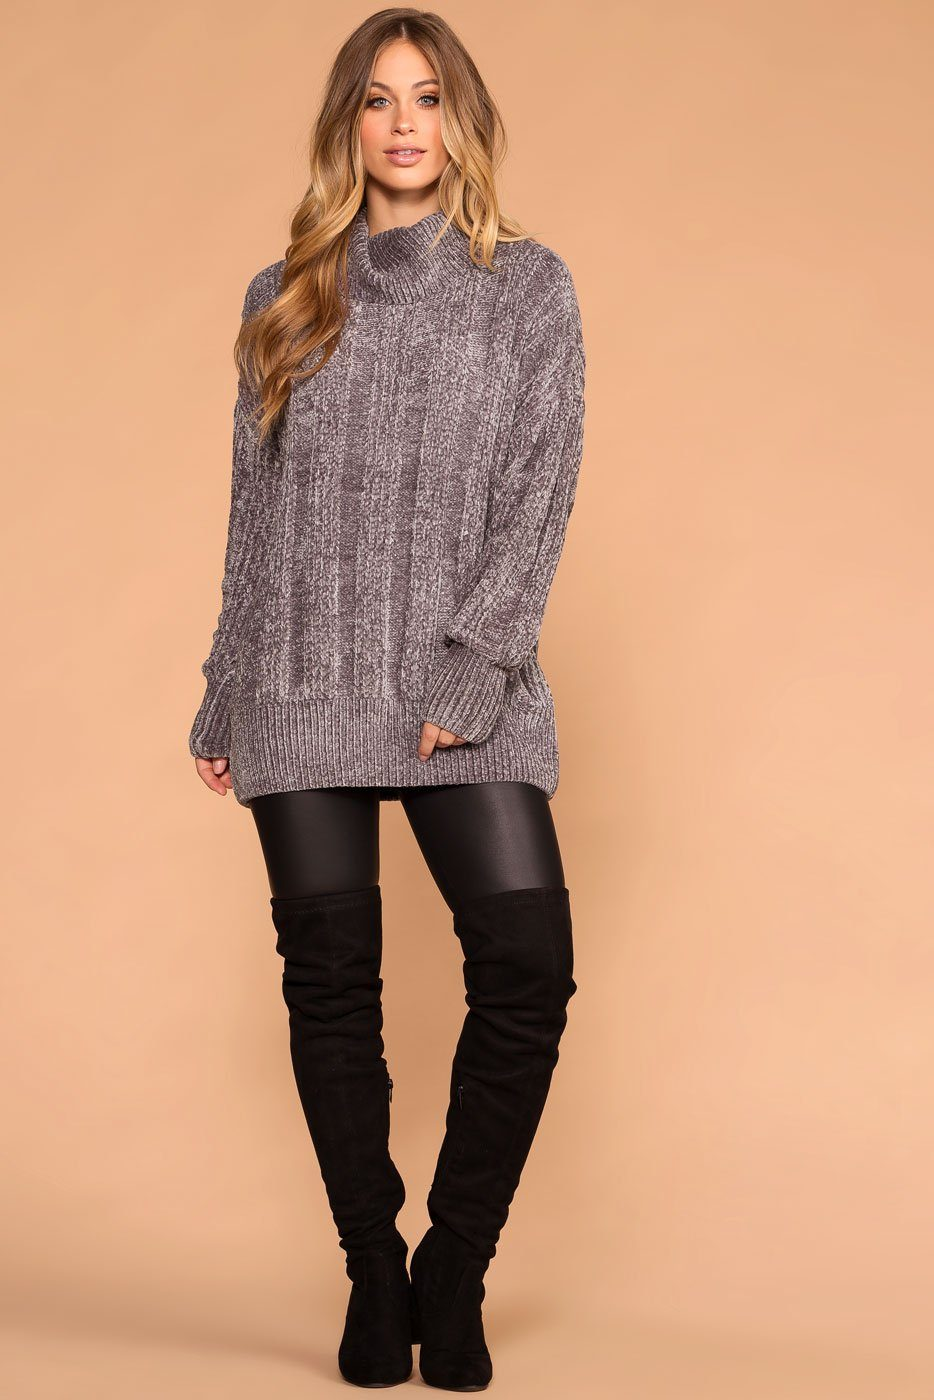 Priceless | Silver Chenille Turtleneck Knit Sweater | Oversized Womens